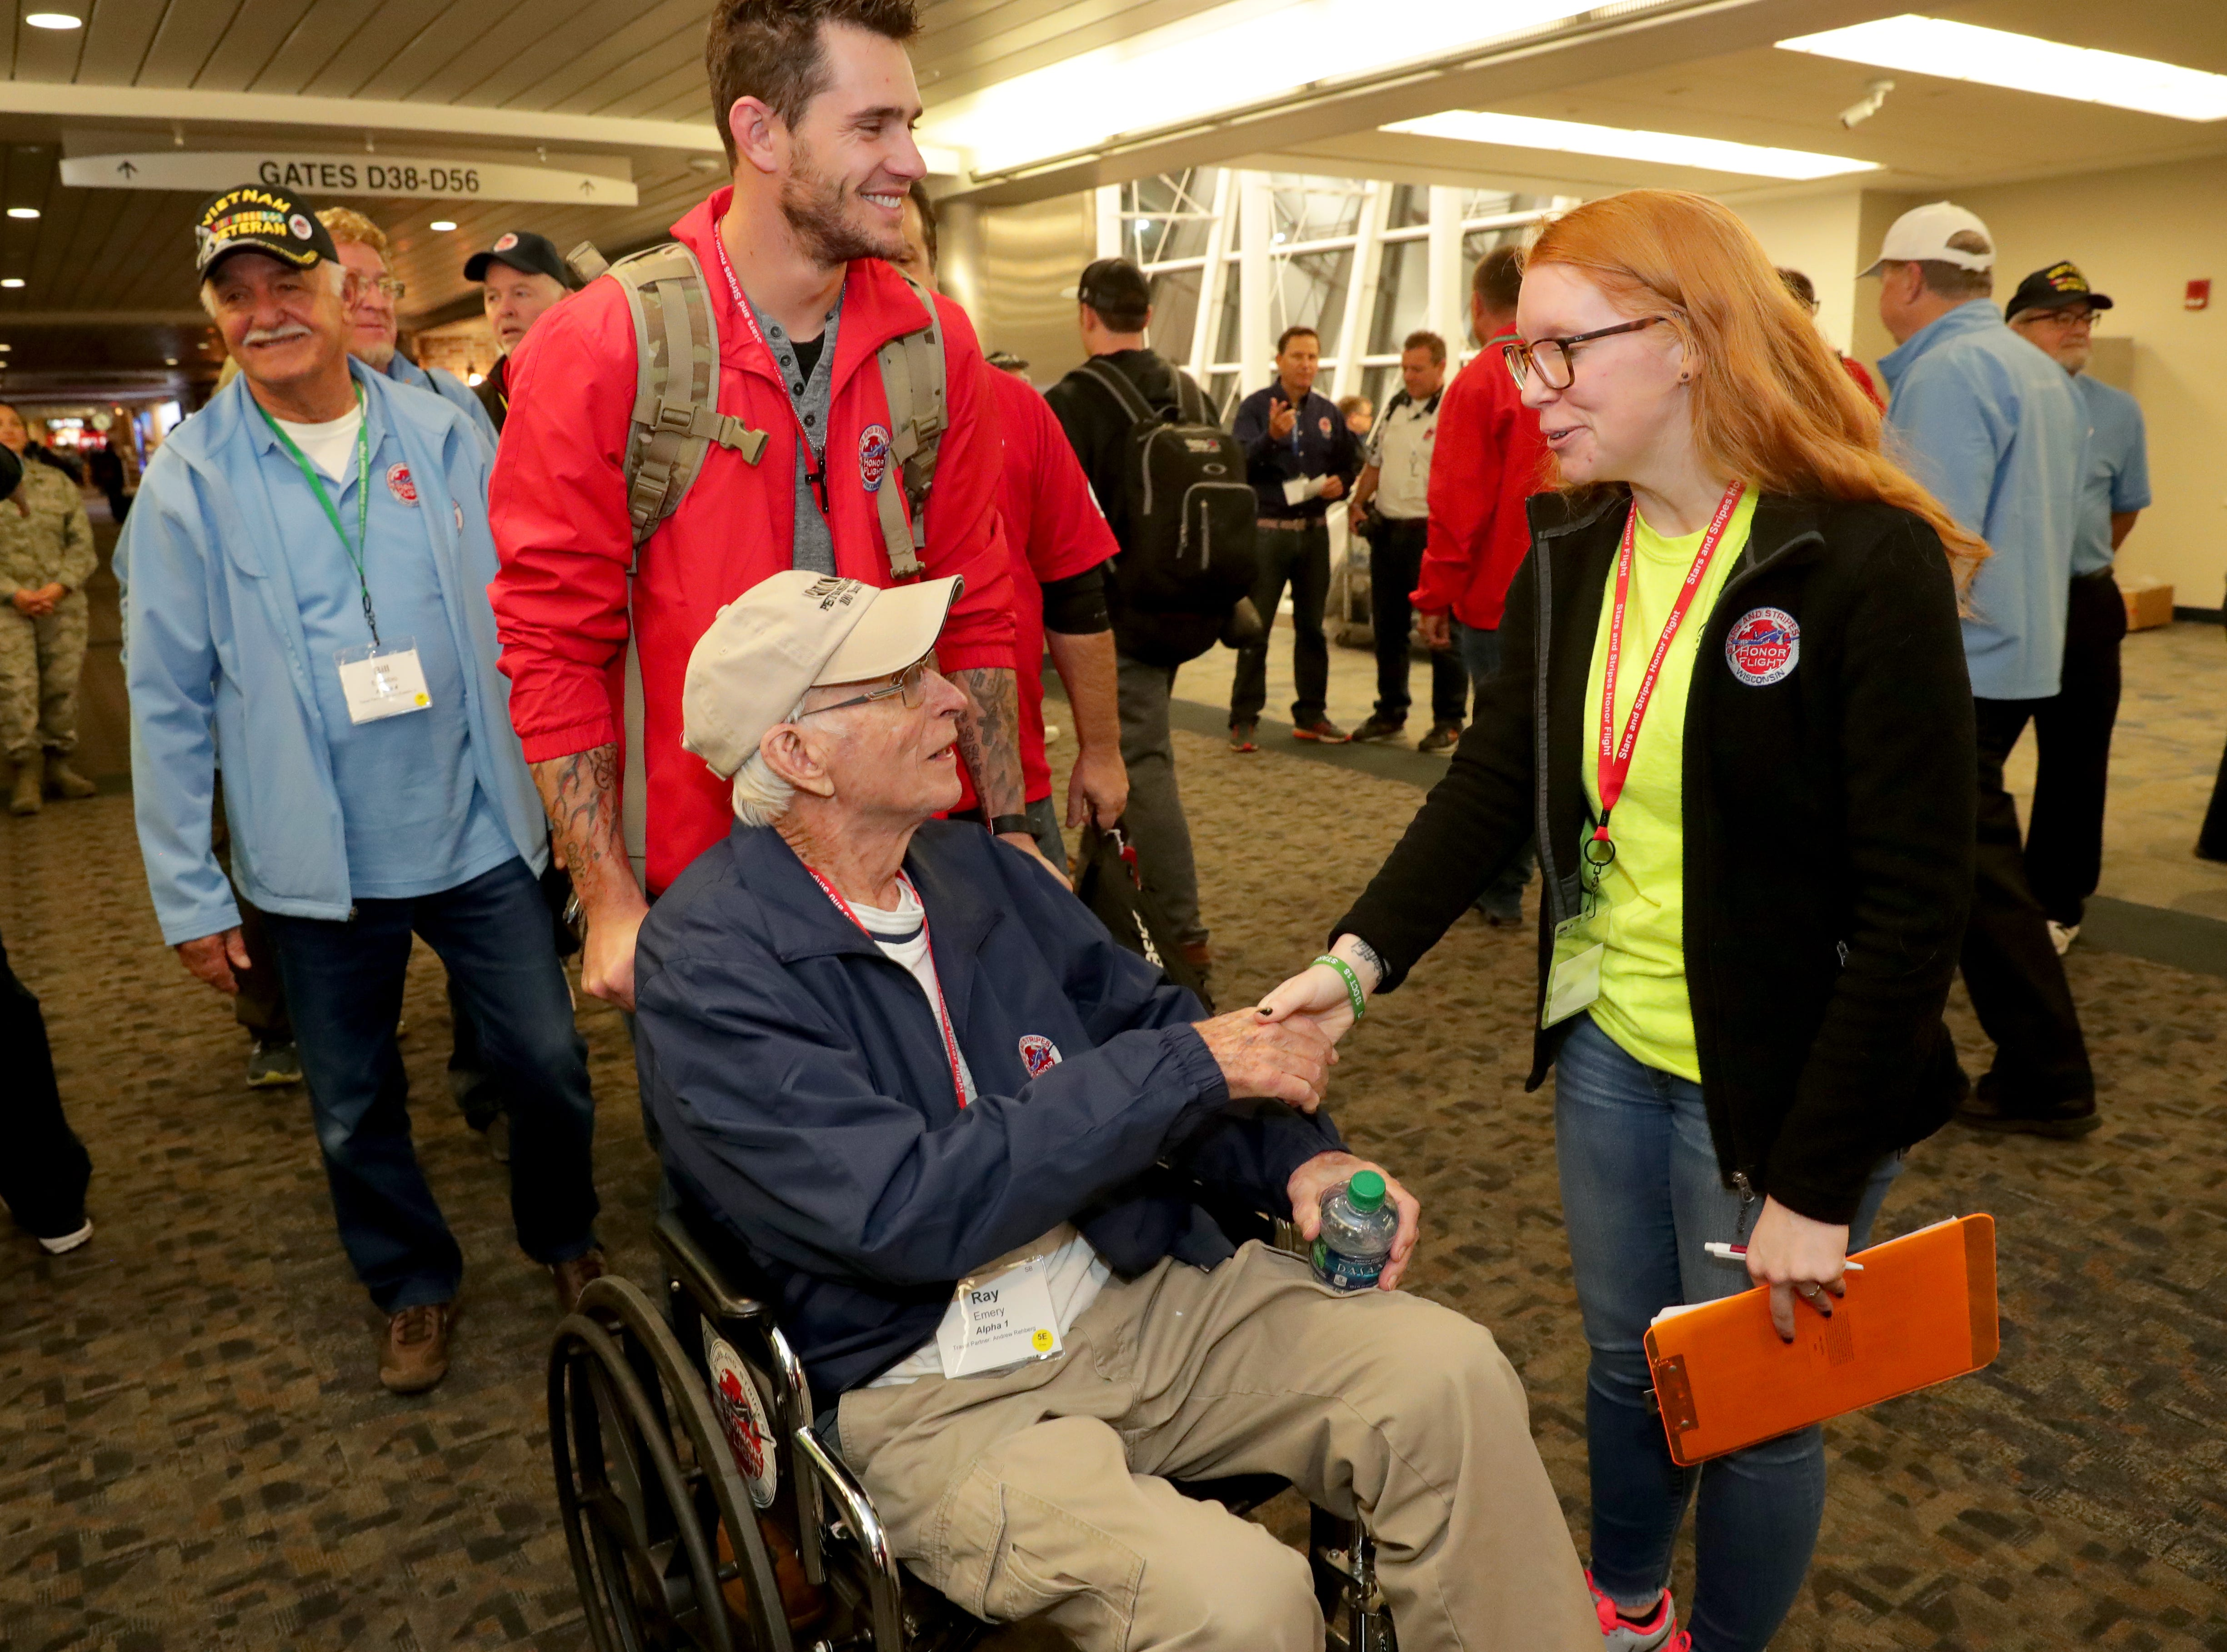 World War II Army veteran Ray Emery, 96, is greeted by Honor Flight volunteer, Erin Ball as Emery's grandson, Andrew Rehberg, who served two deployments in Afghanistan, 2010-'11 and 2012-'13, and in Kuwait, 2016-'17, serves as his guardian, before the flight departed from Milwaukee.